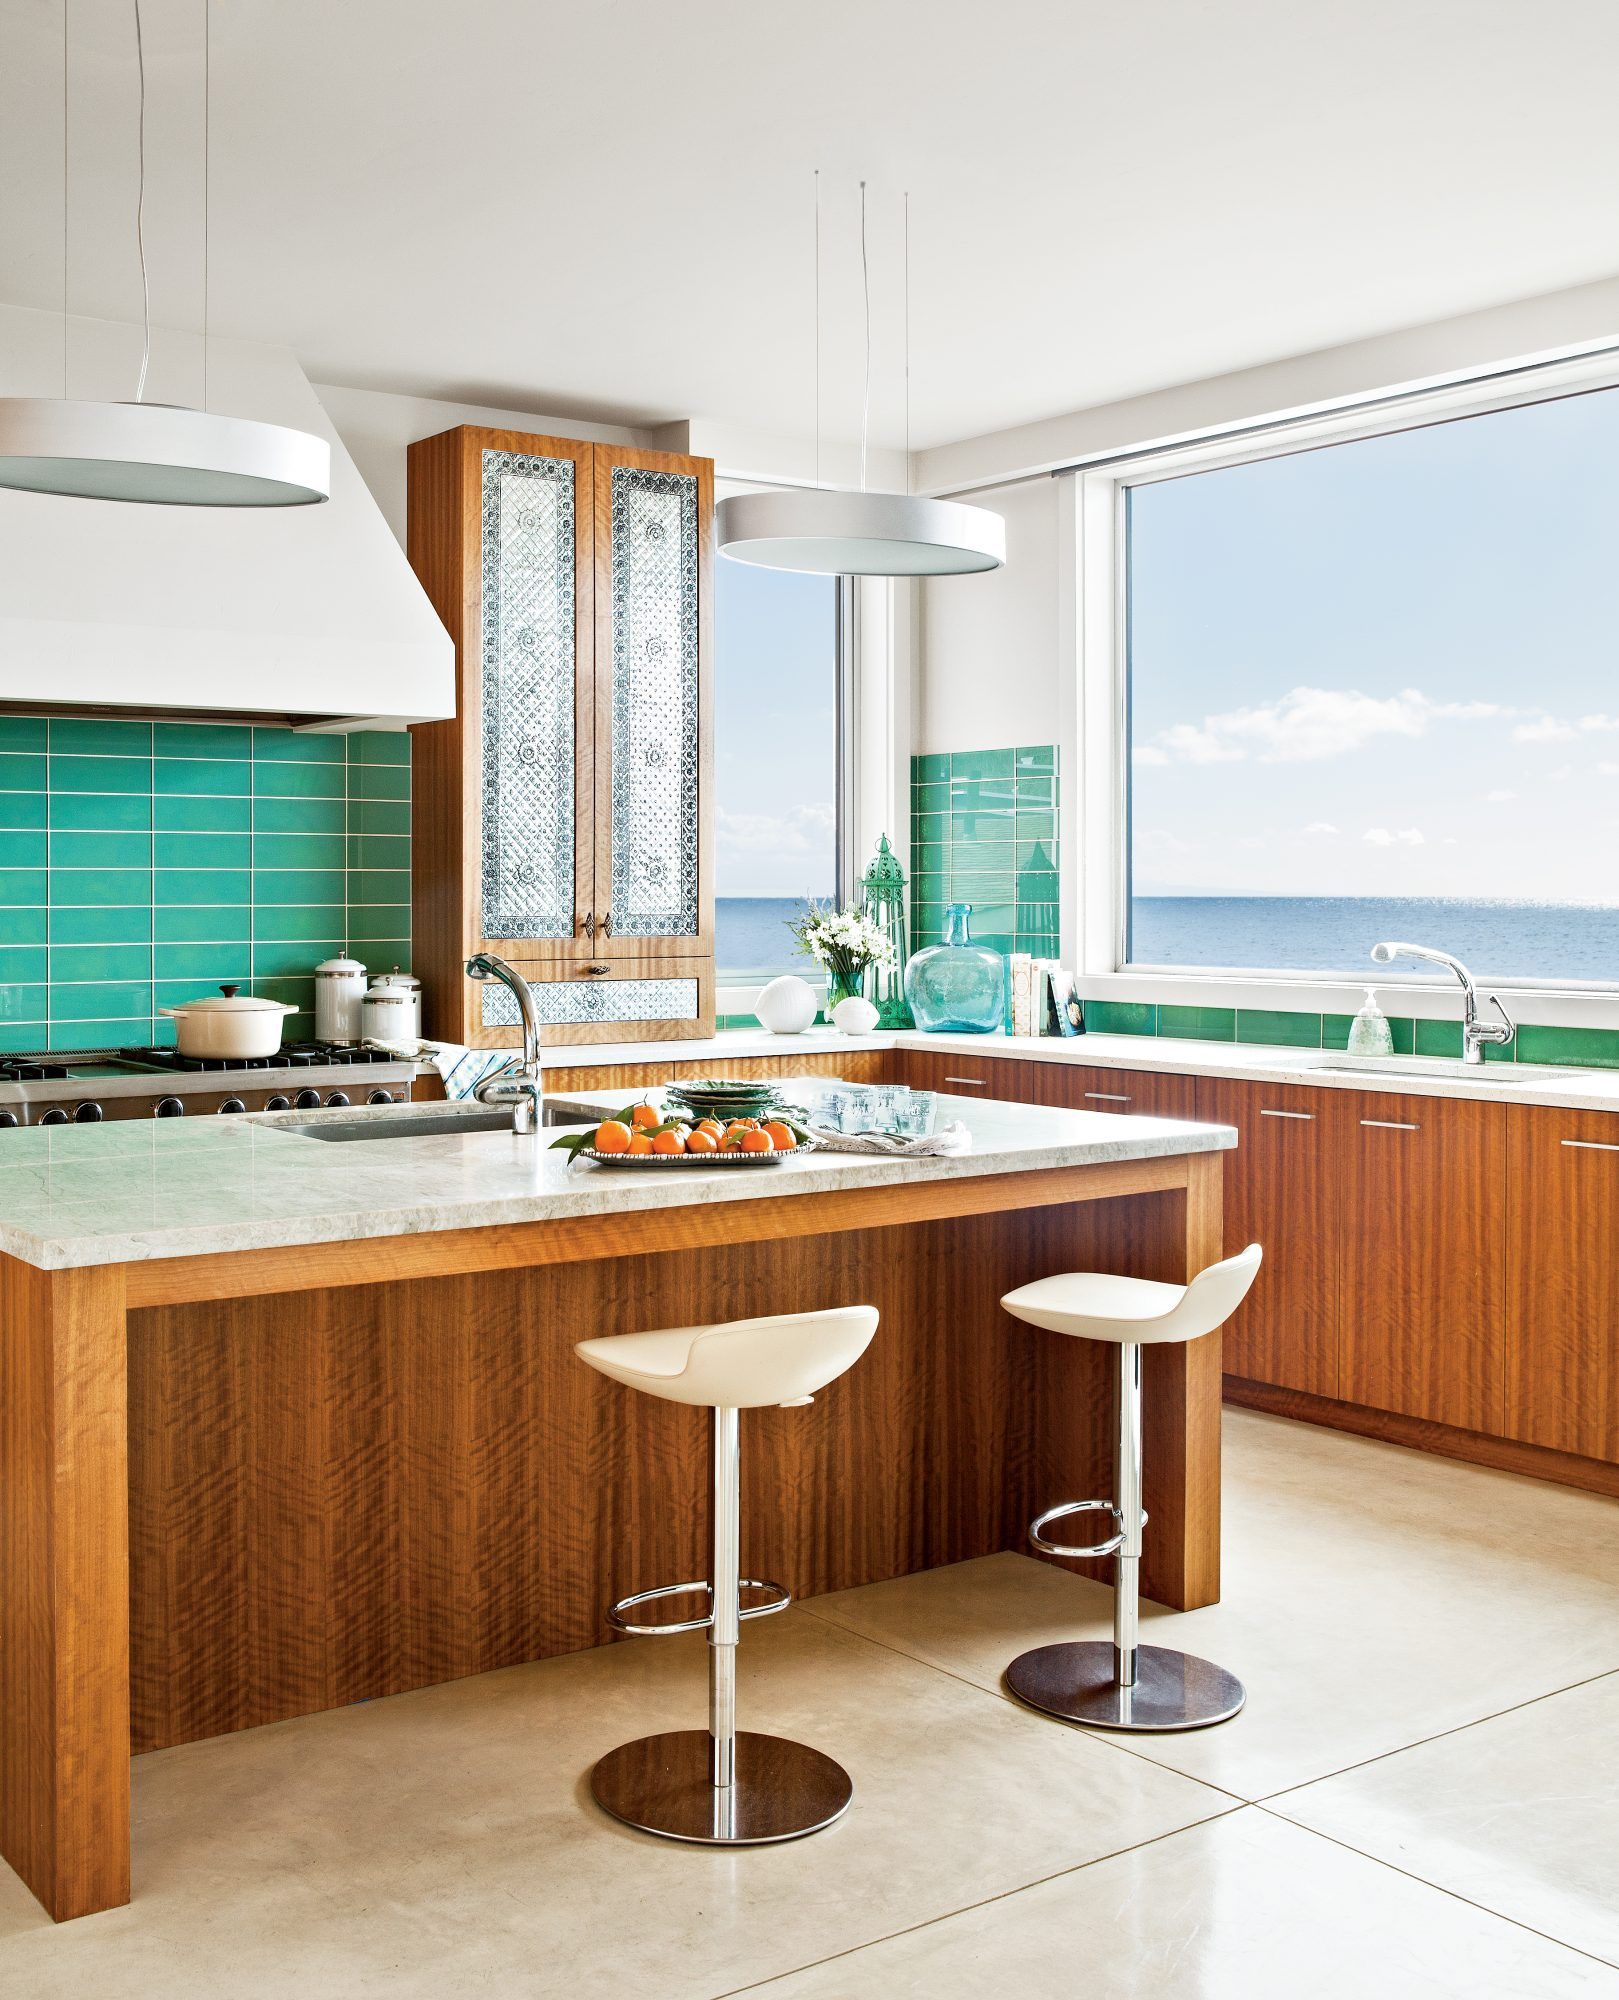 How do you hold your own against an ocean view this stellar? With warm, mod cabinets; bold, teal glass subway tile; and all-white everything else. A trio of punched metal cabinet doors give this kitchen an unexpected ornate touch, and the simple tile floo